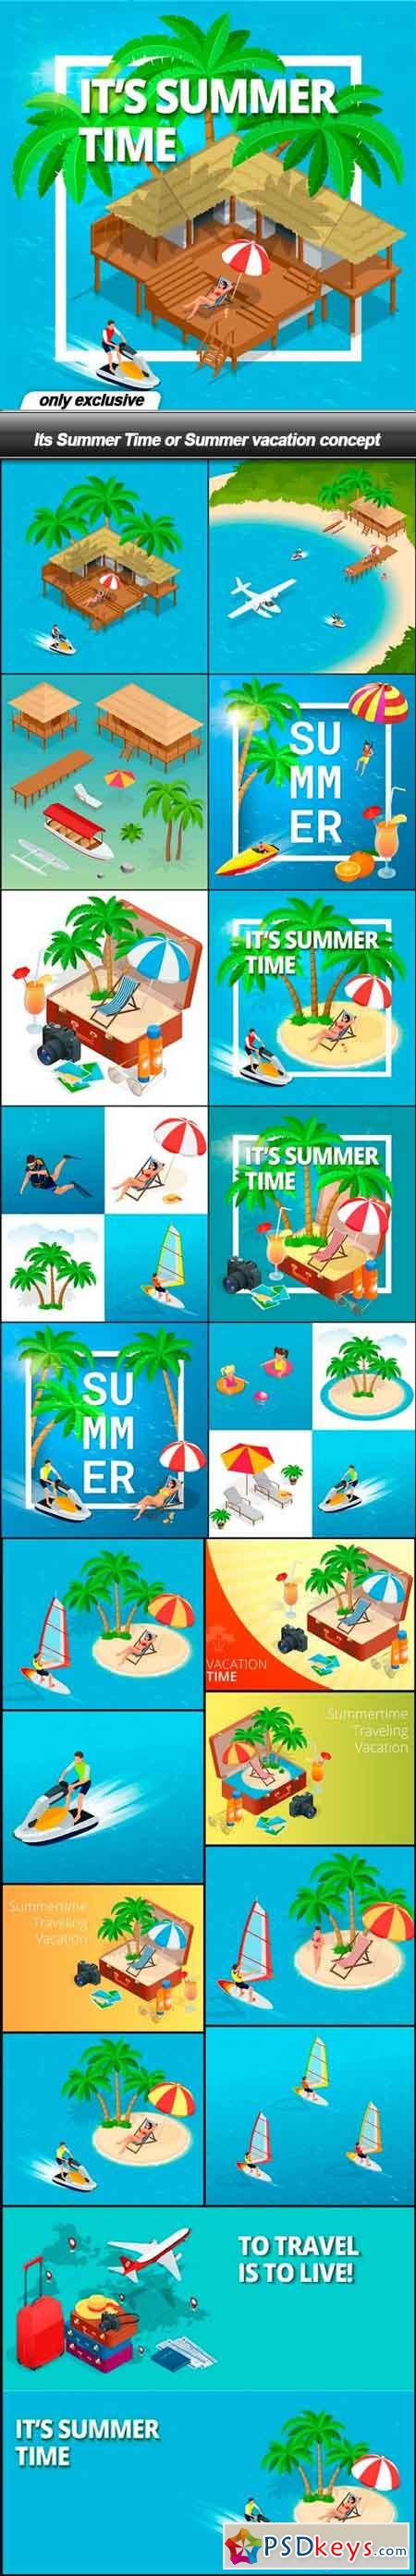 Its Summer Time or Summer vacation concept - 20 EPS